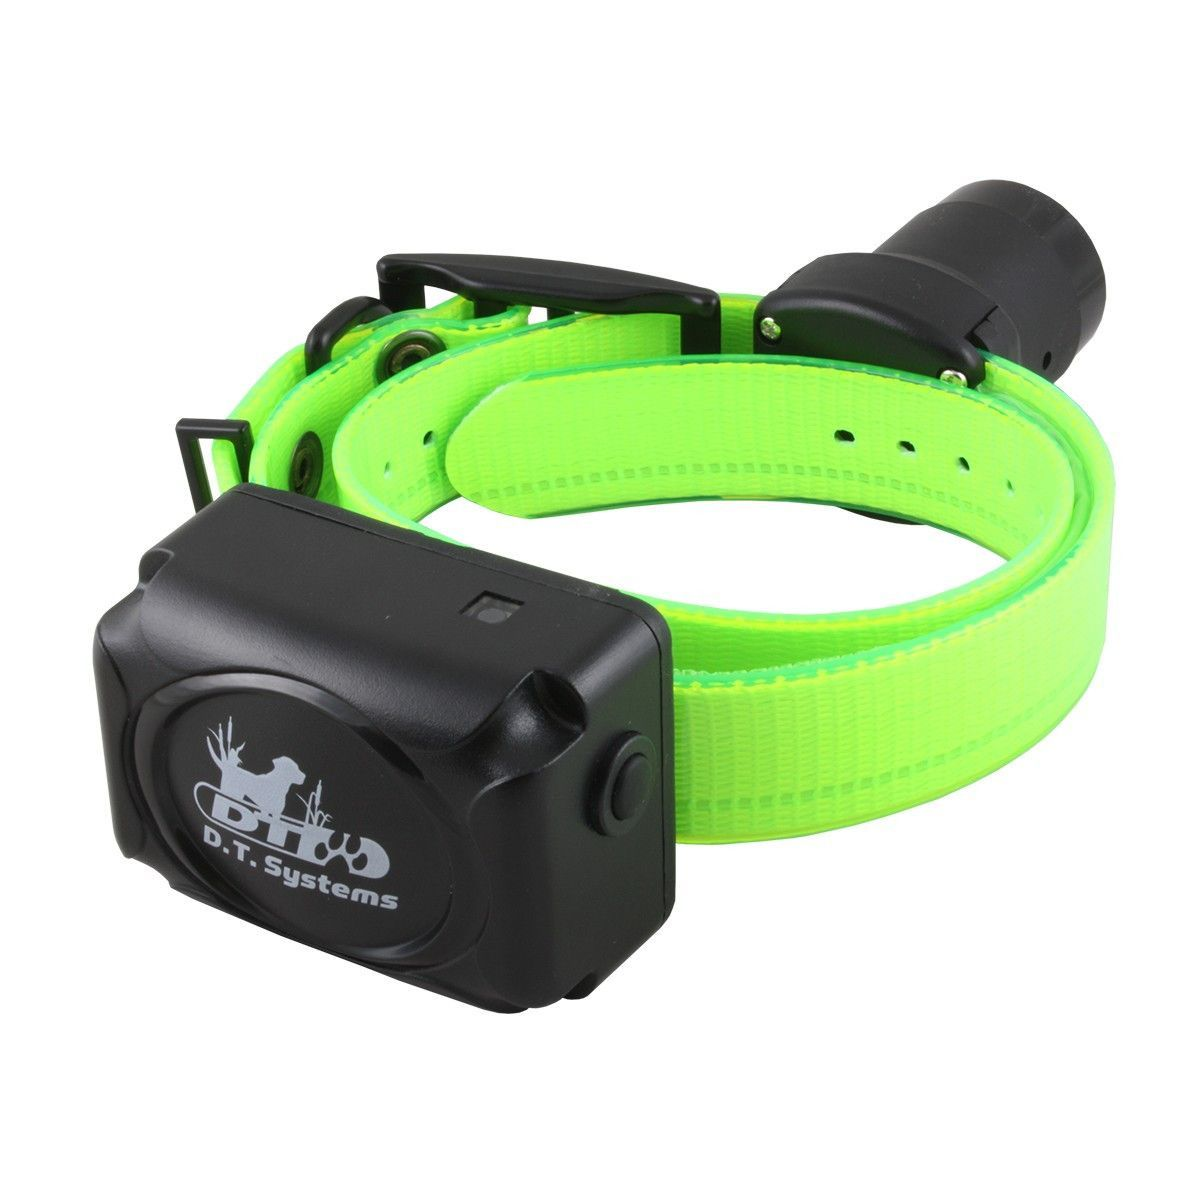 D T Systems R A P T 1450 Upland Beeper Add On Collar Dog